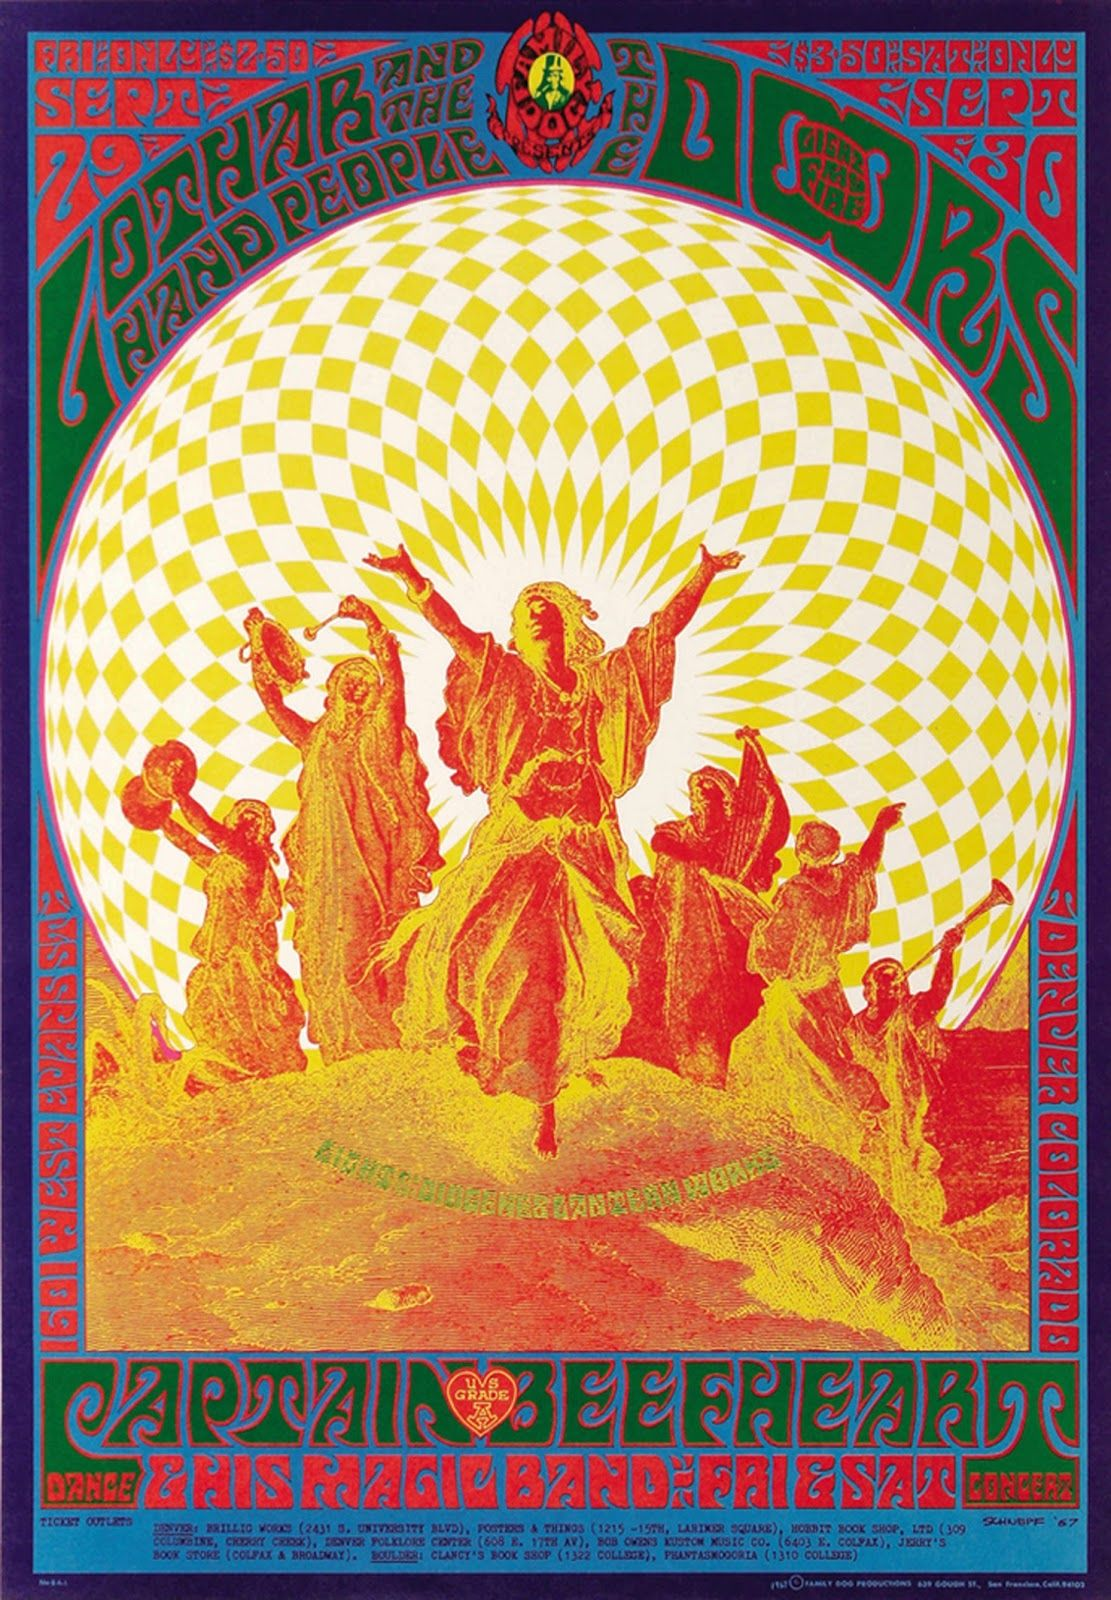 Here is a great little collection of trippy psychedelic rock posters